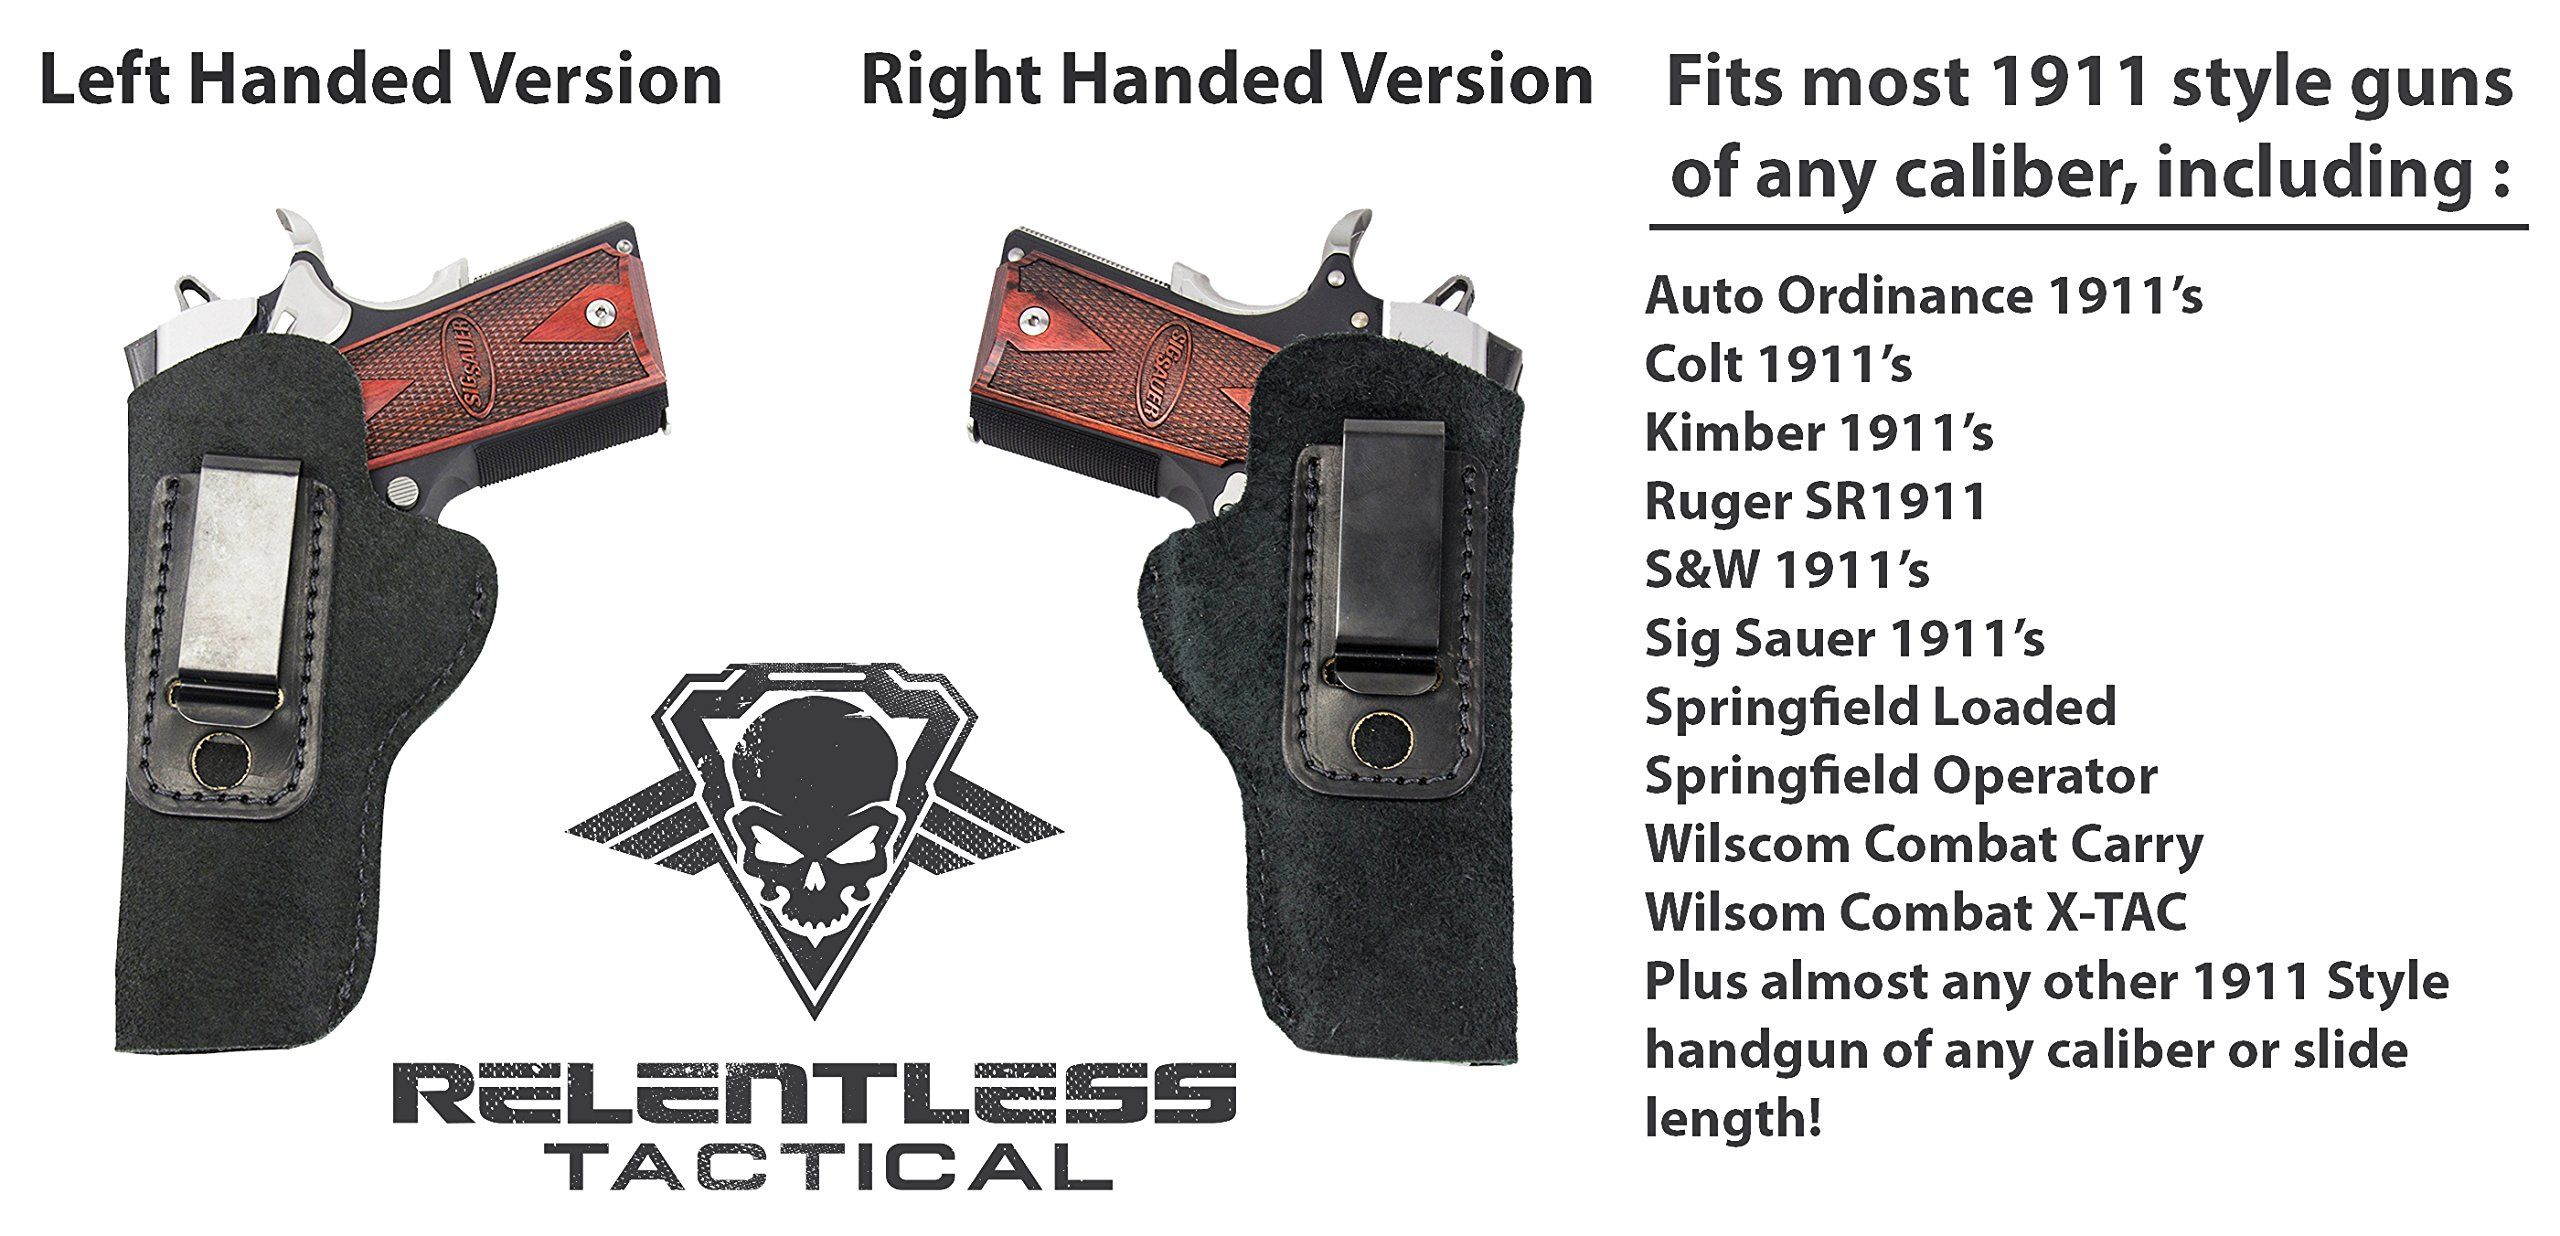 The Ultimate Suede Leather IWB Holster Right Handed Made in